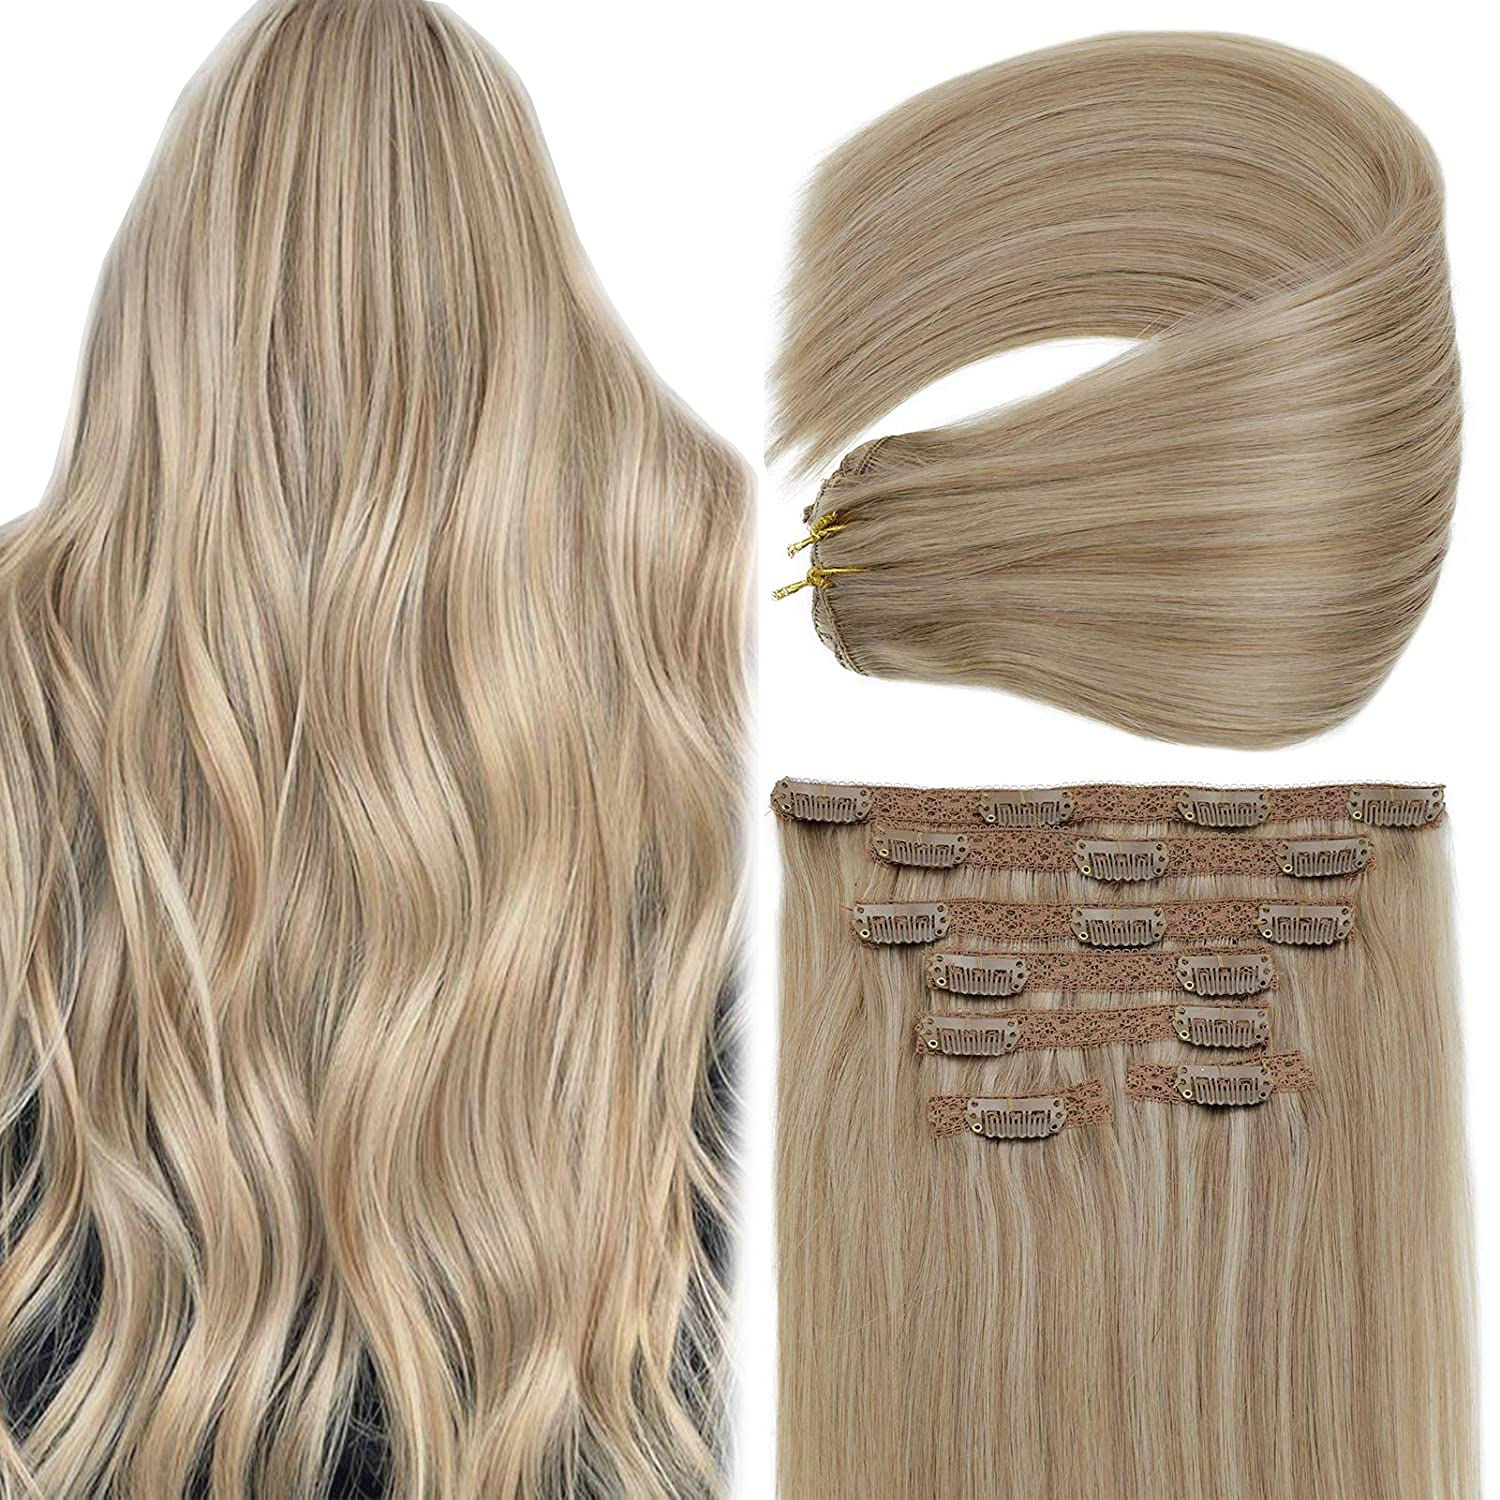 Vivien Blonde Highlight Clip in Max 45% OFF Extensions Lo Inch Human Hair 20 Fixed price for sale